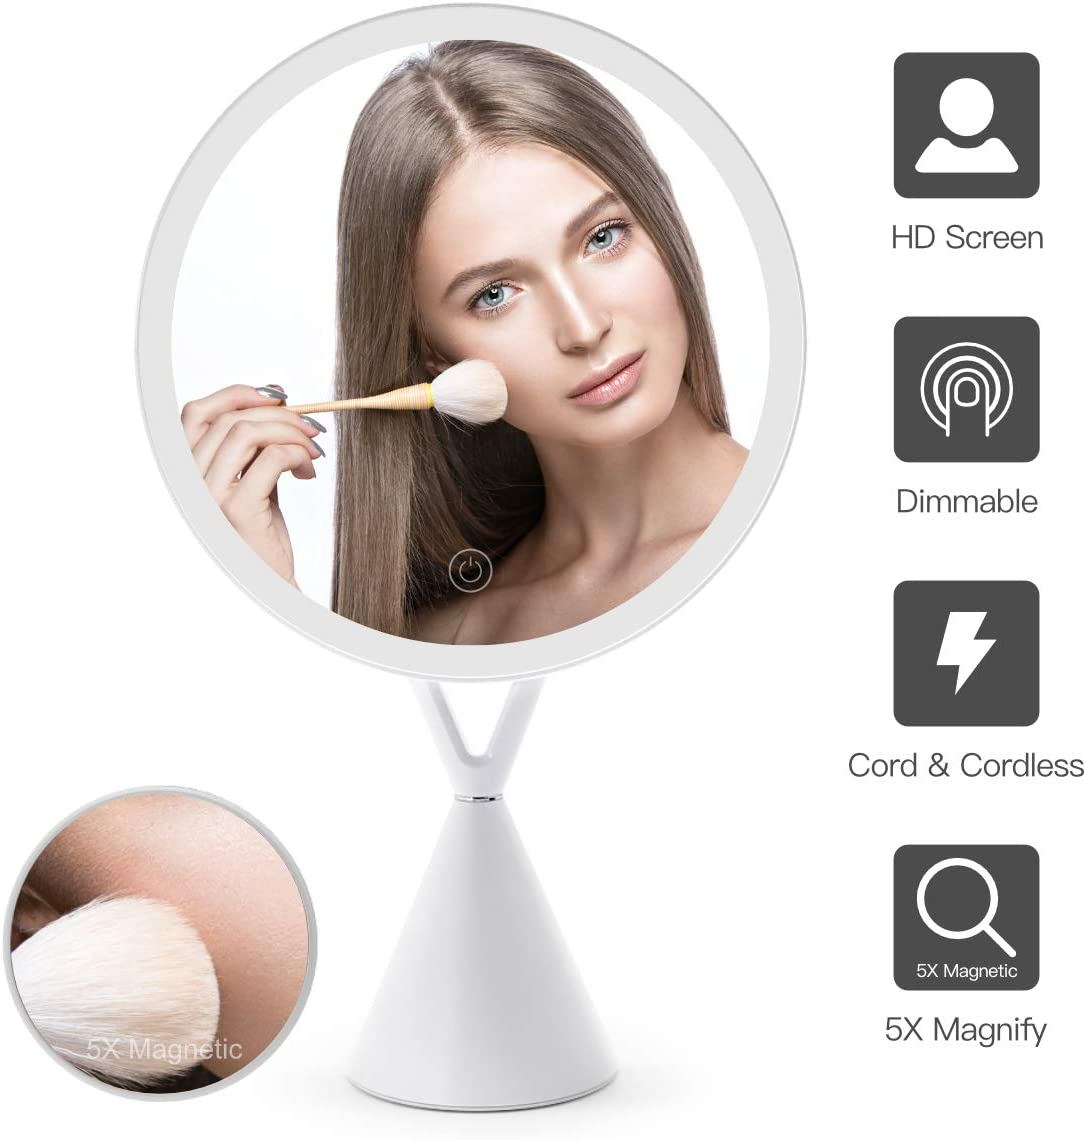 FASCINATE Magnetic Lighted Makeup Mirror, Dimmable Natural Light Vanity Makeup Mirror 45 Rotable Light Up Mirror 30 LED Touch Screen with Mirror 5X Magnification Round Cord Cordless White